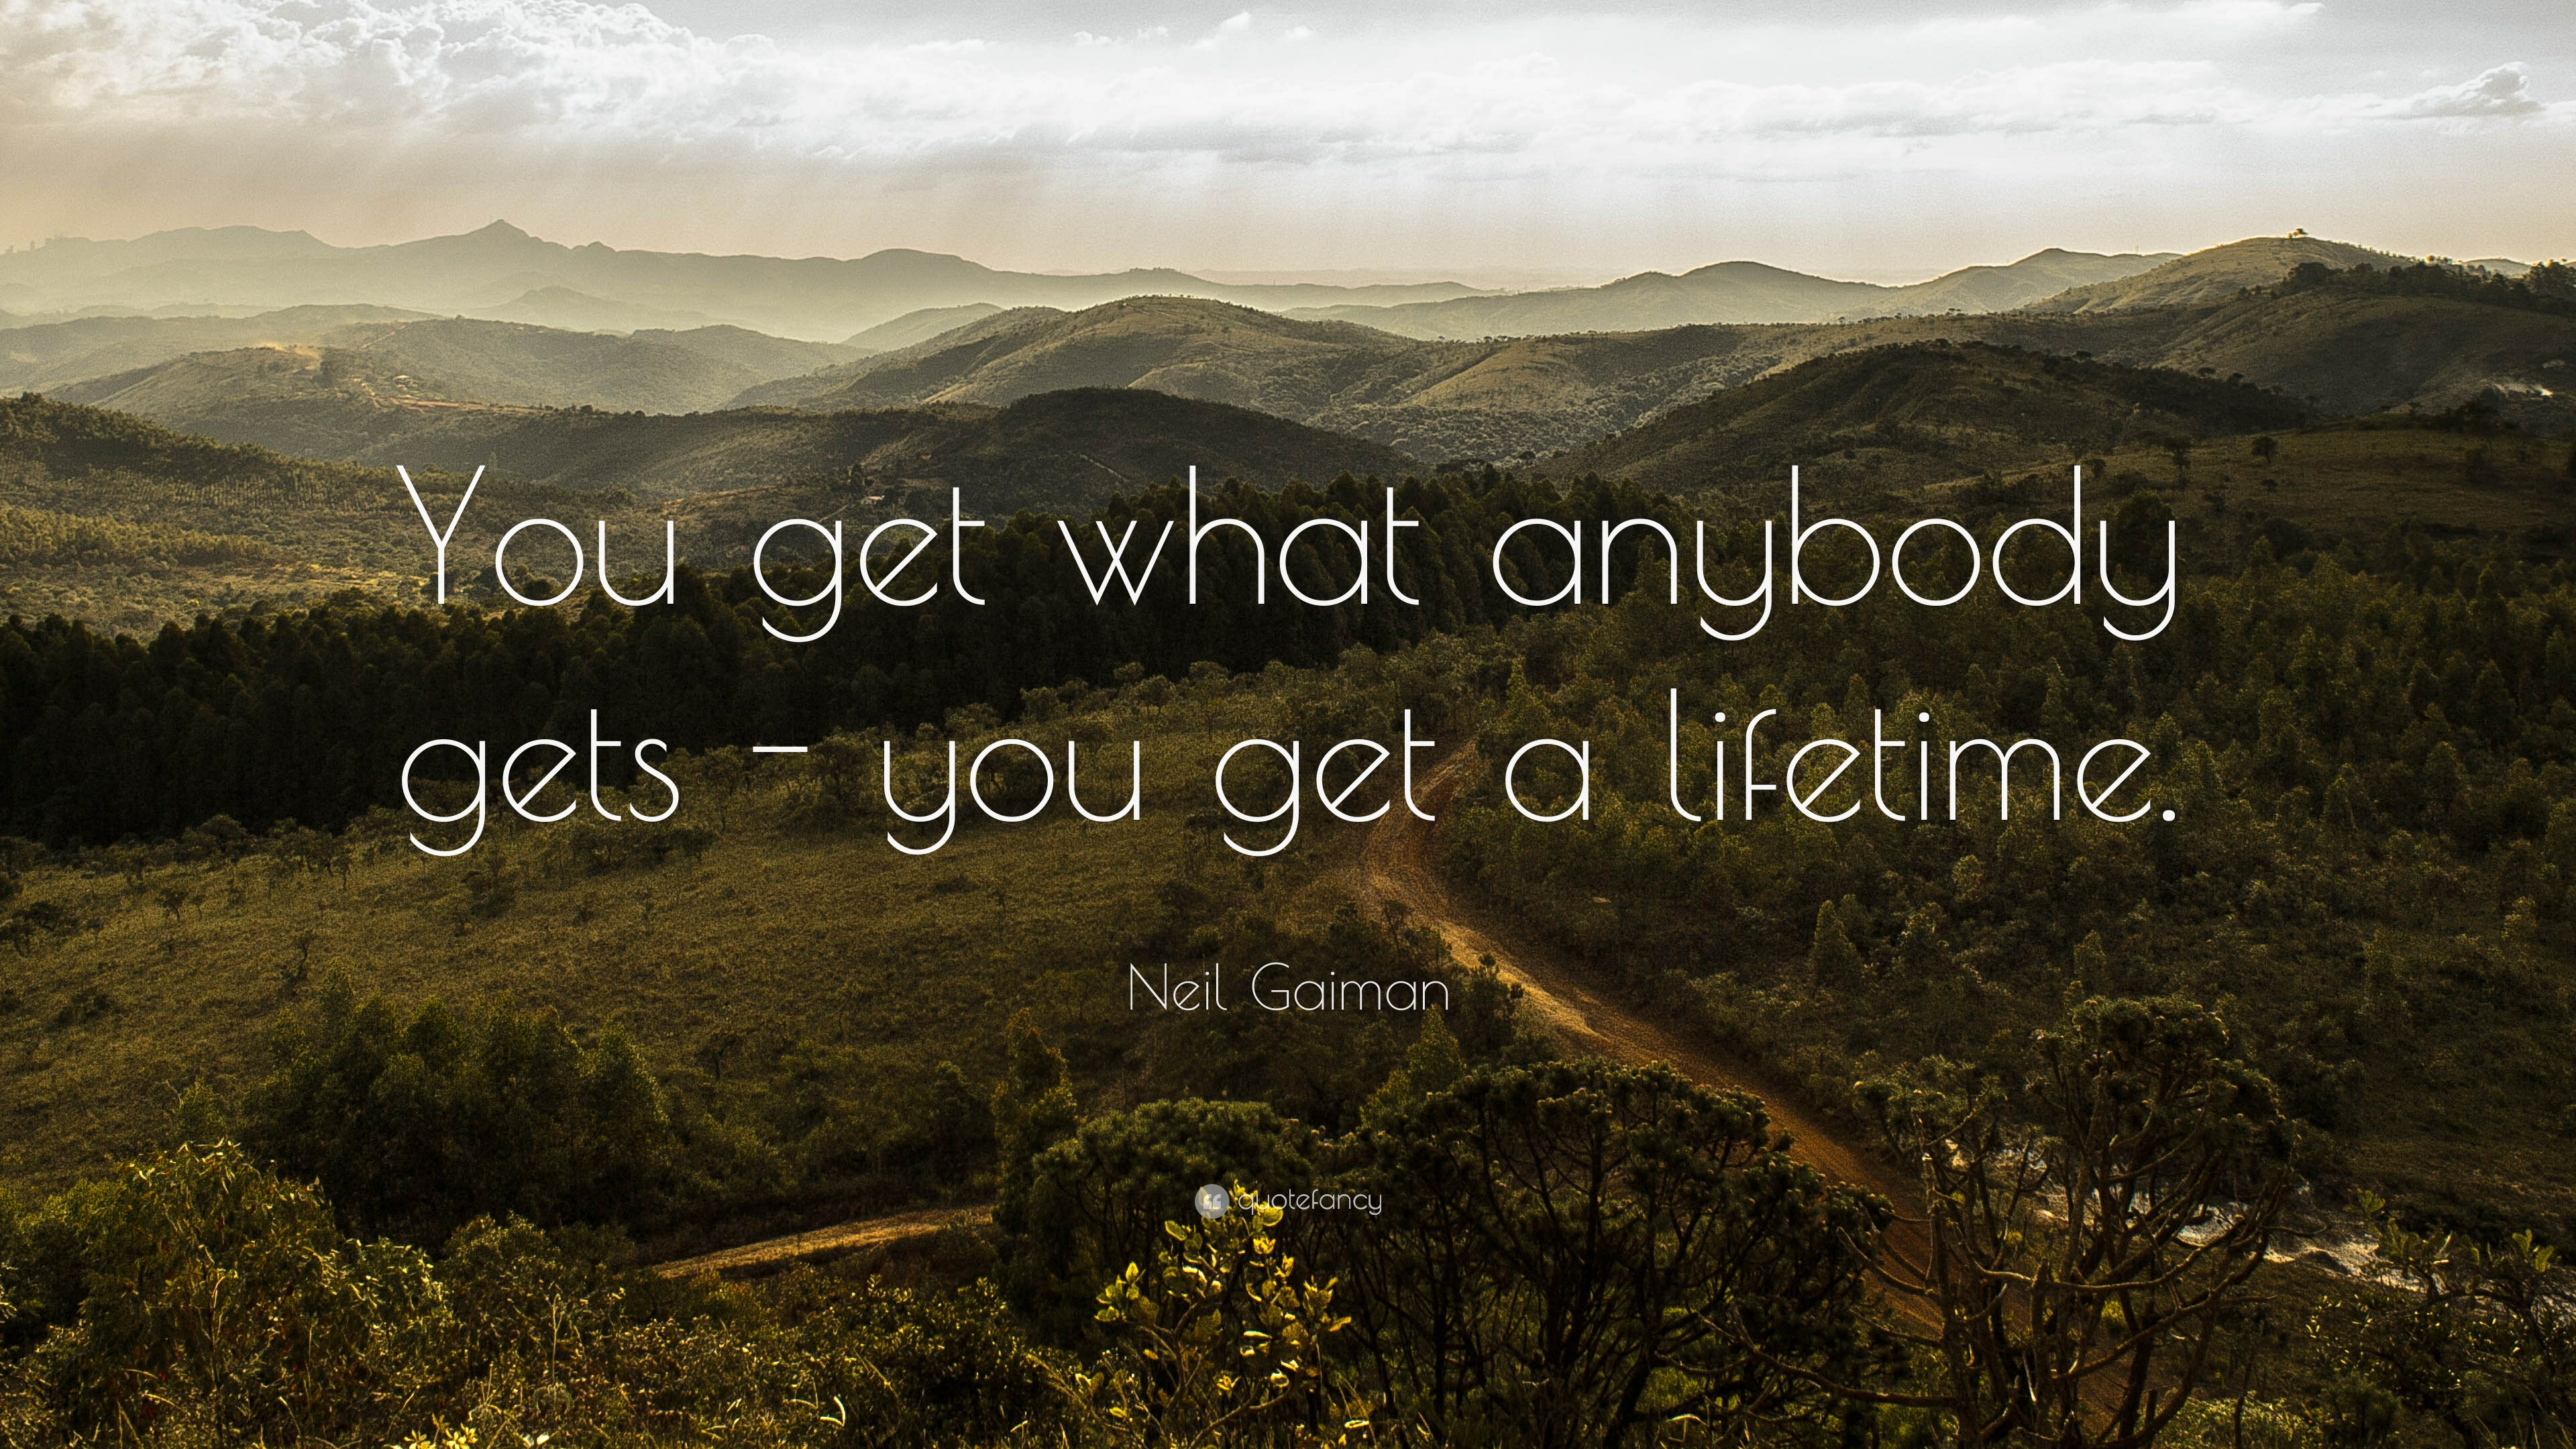 10992-neil-gaiman-quote-you-get-what-anybody-gets-you-get-a-lifetime